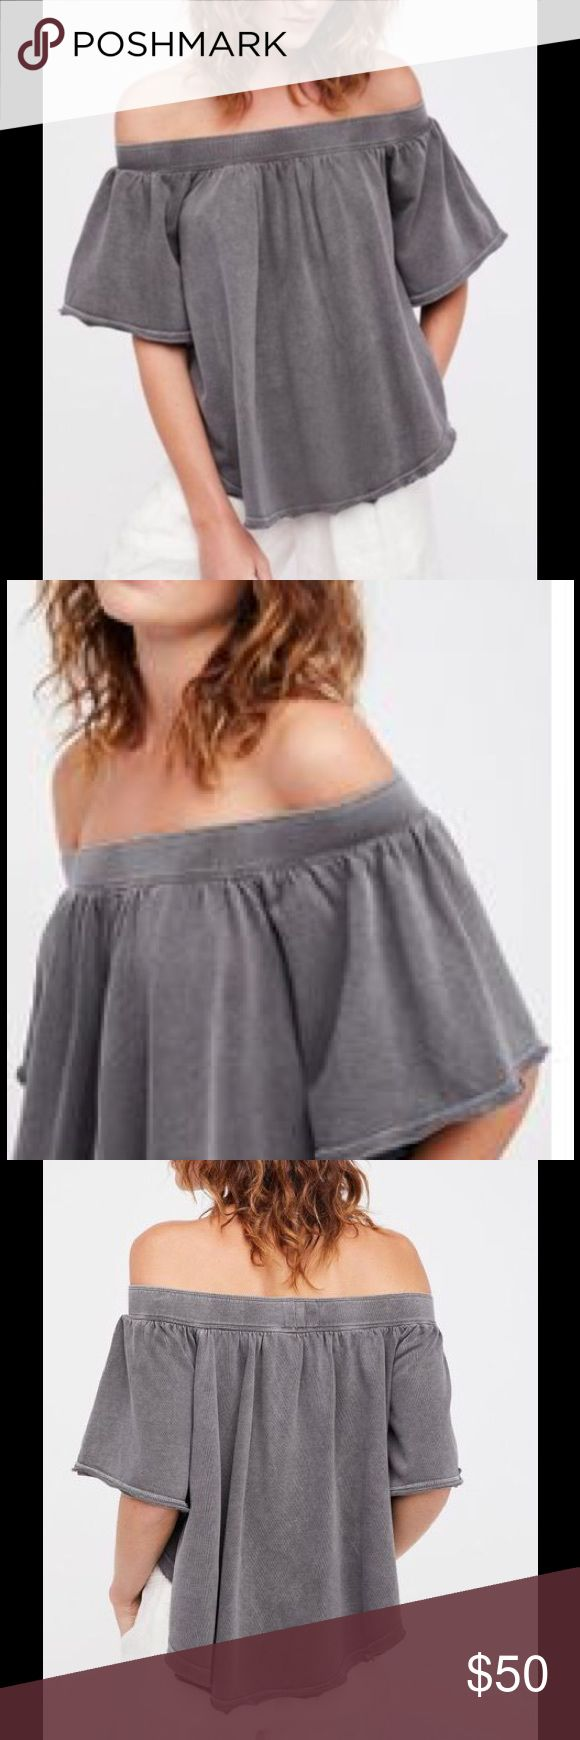 ❤️ Free people kiss me tube Free people kiss me tube top. In black but really a washed out black, more gray. Cape like. Super cute! App 22 longest length Free People Tops